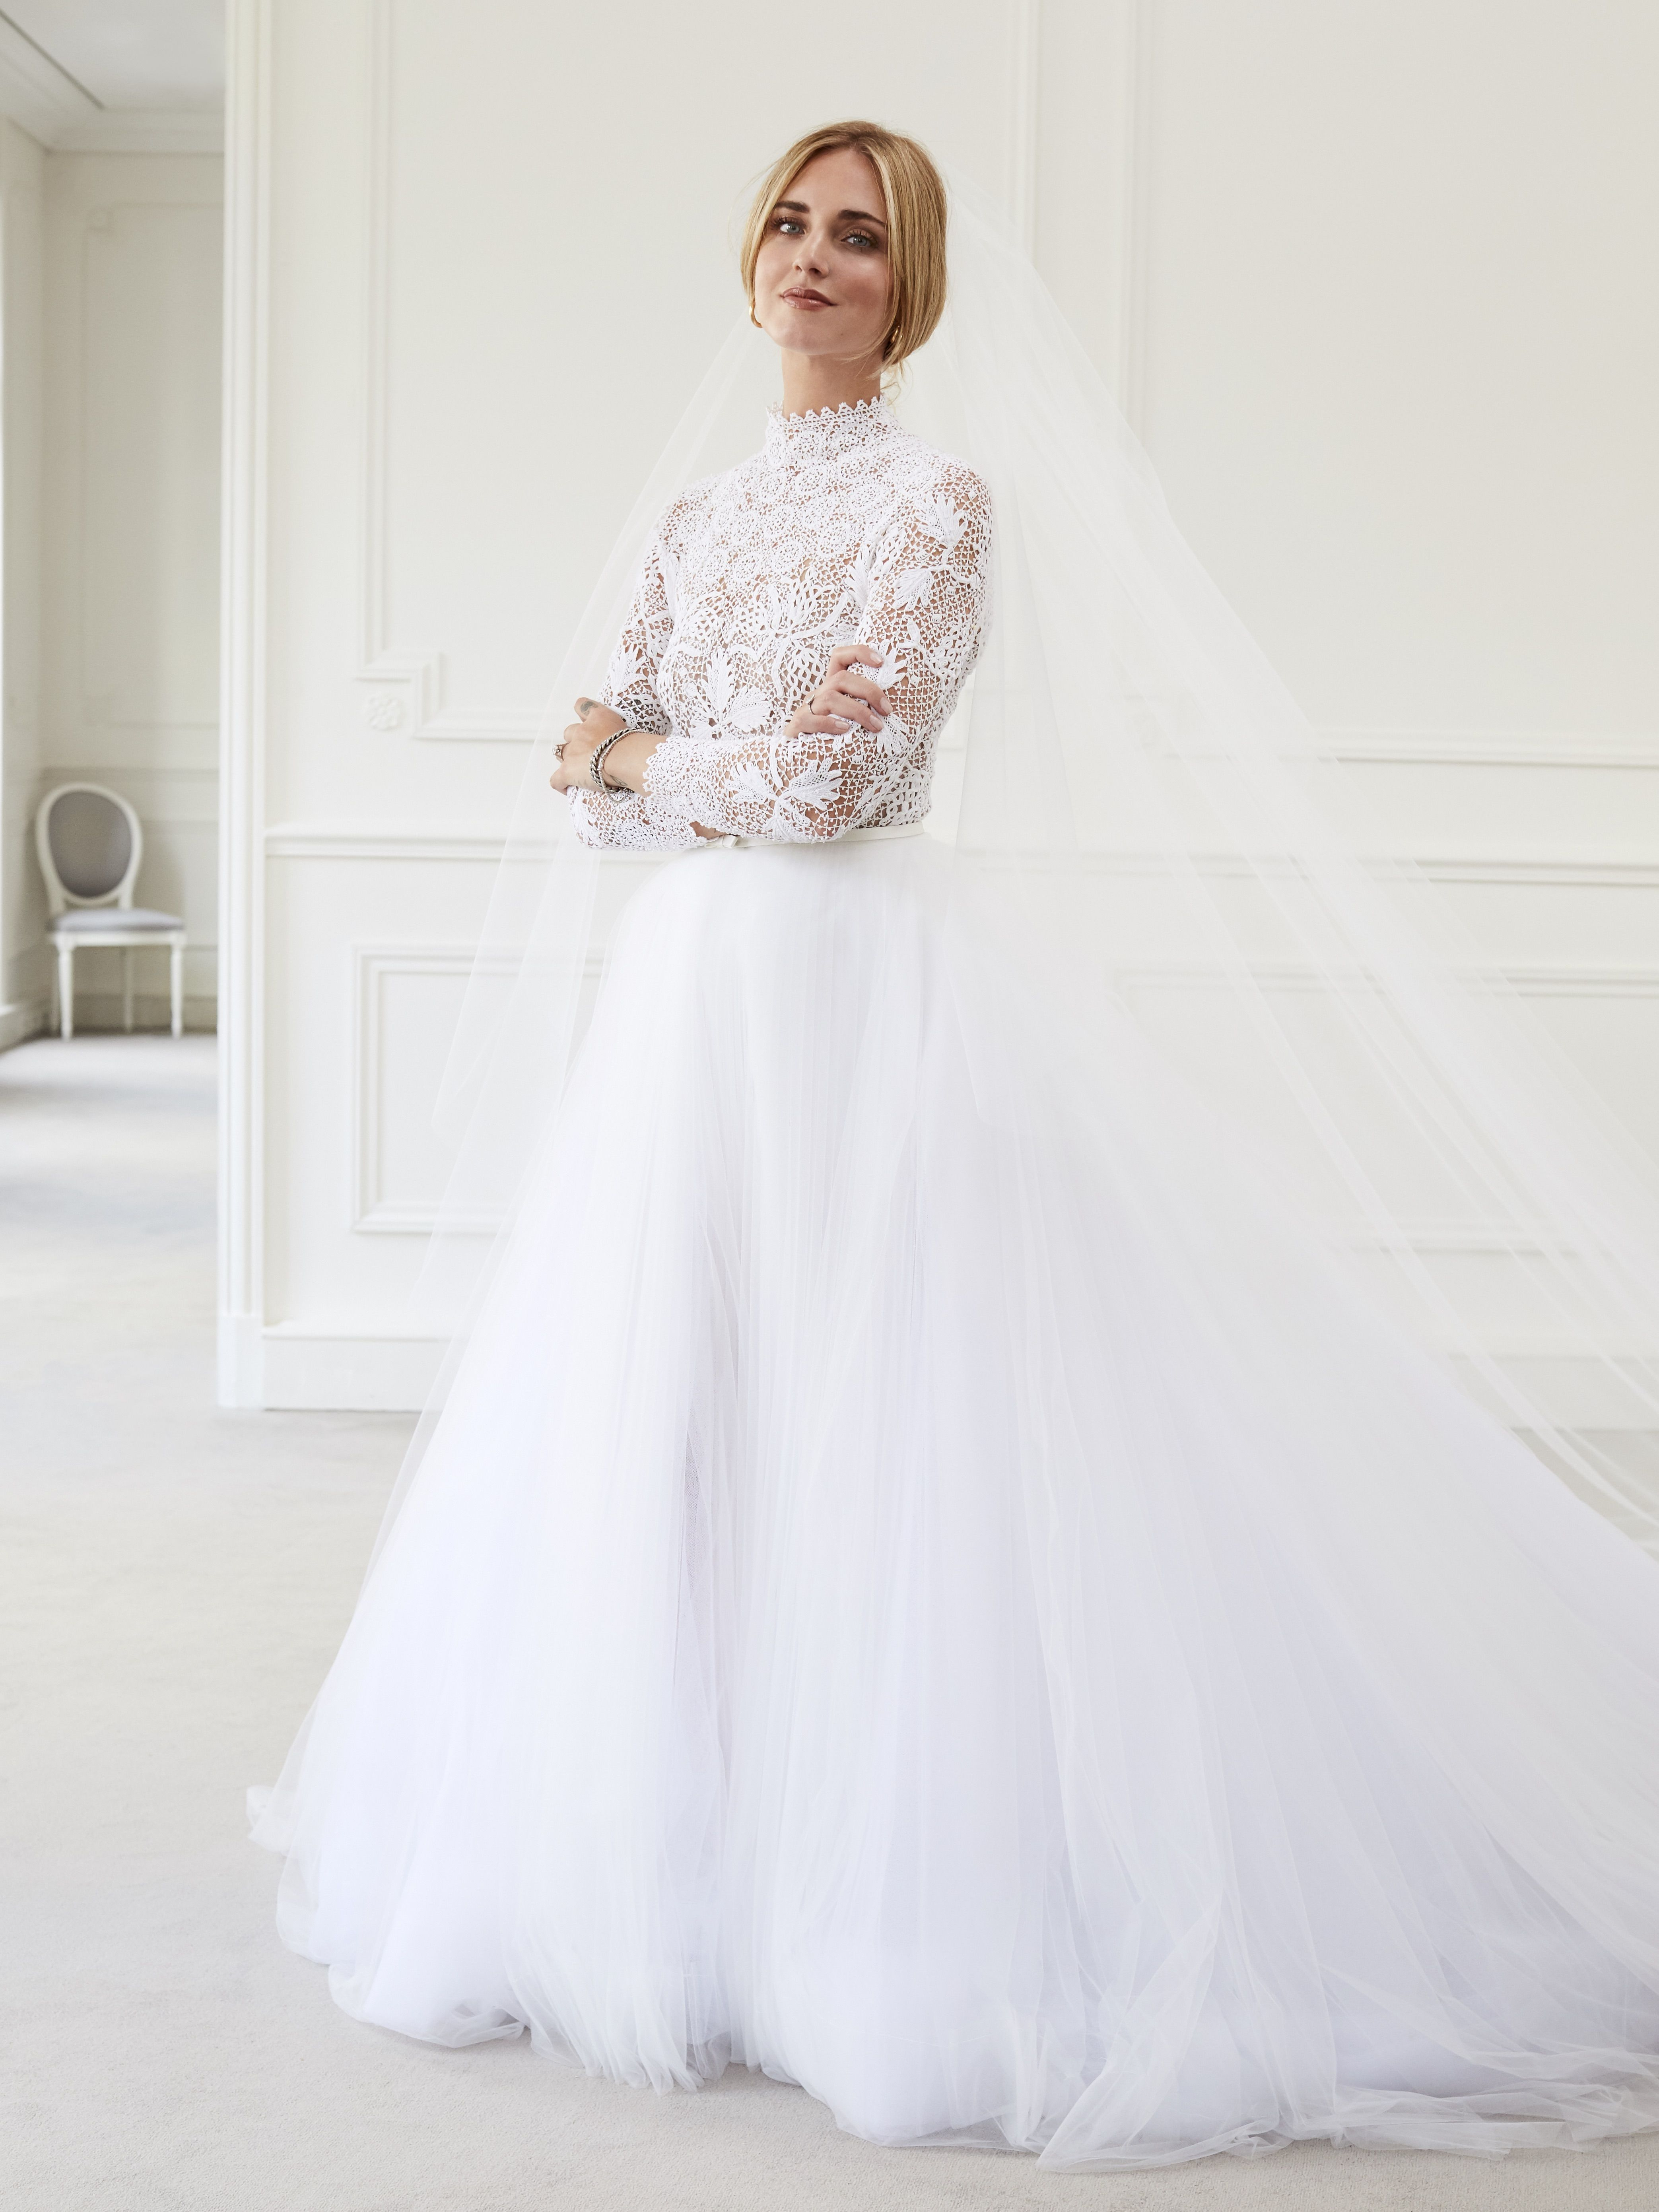 Video Chiara Ferragni Sees Her Dior Wedding Dress For The